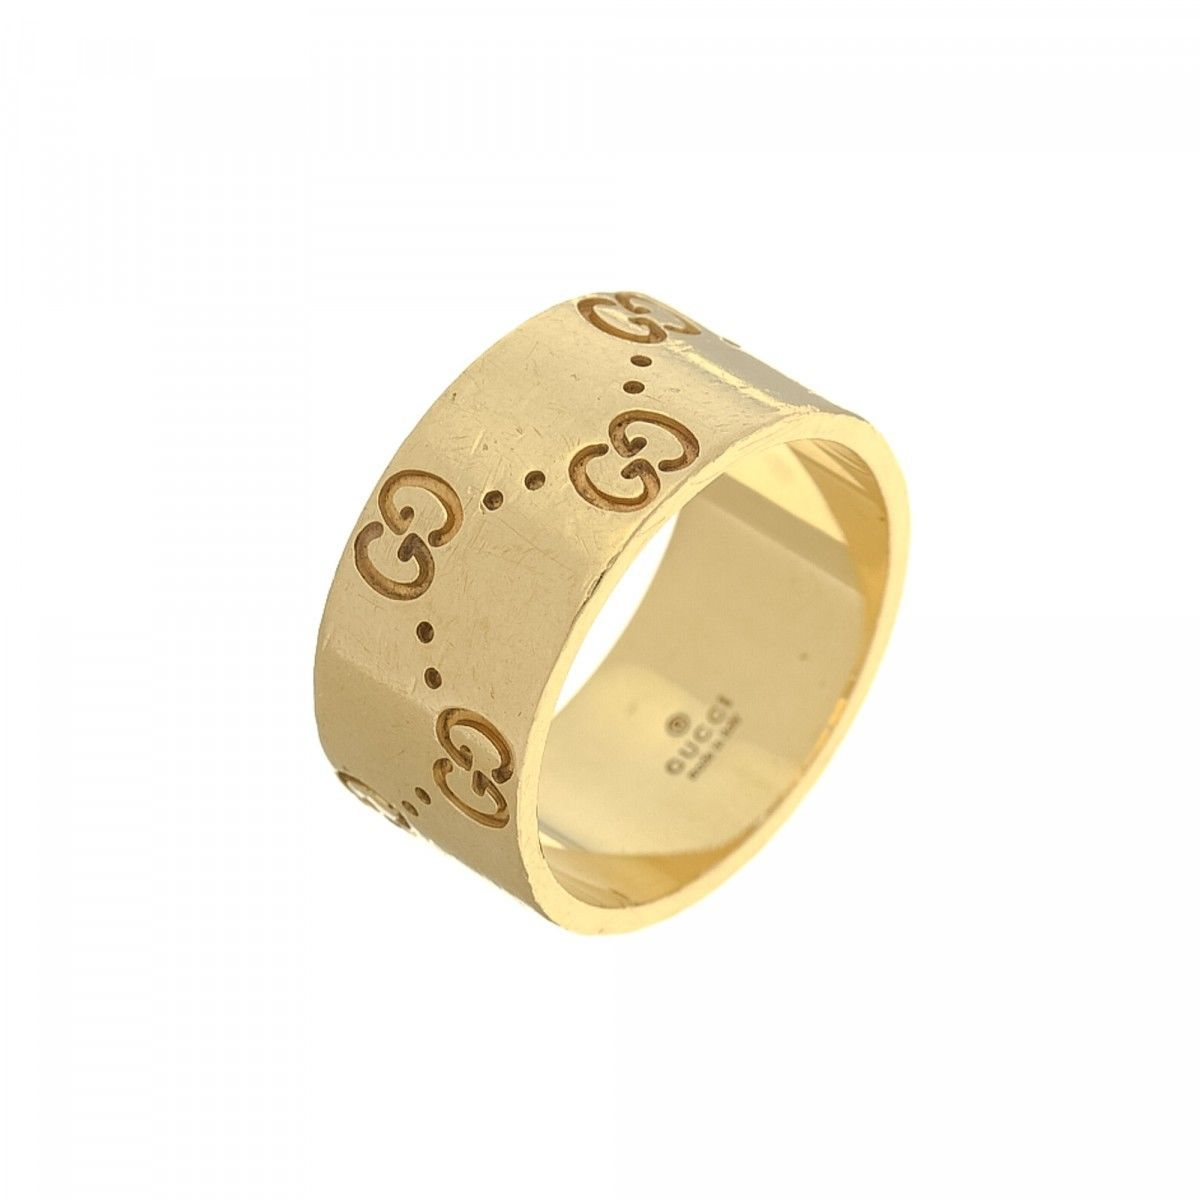 i plated ring f tessa metcalfe s l u img e gold product single o d n rings jewellery claw bronze